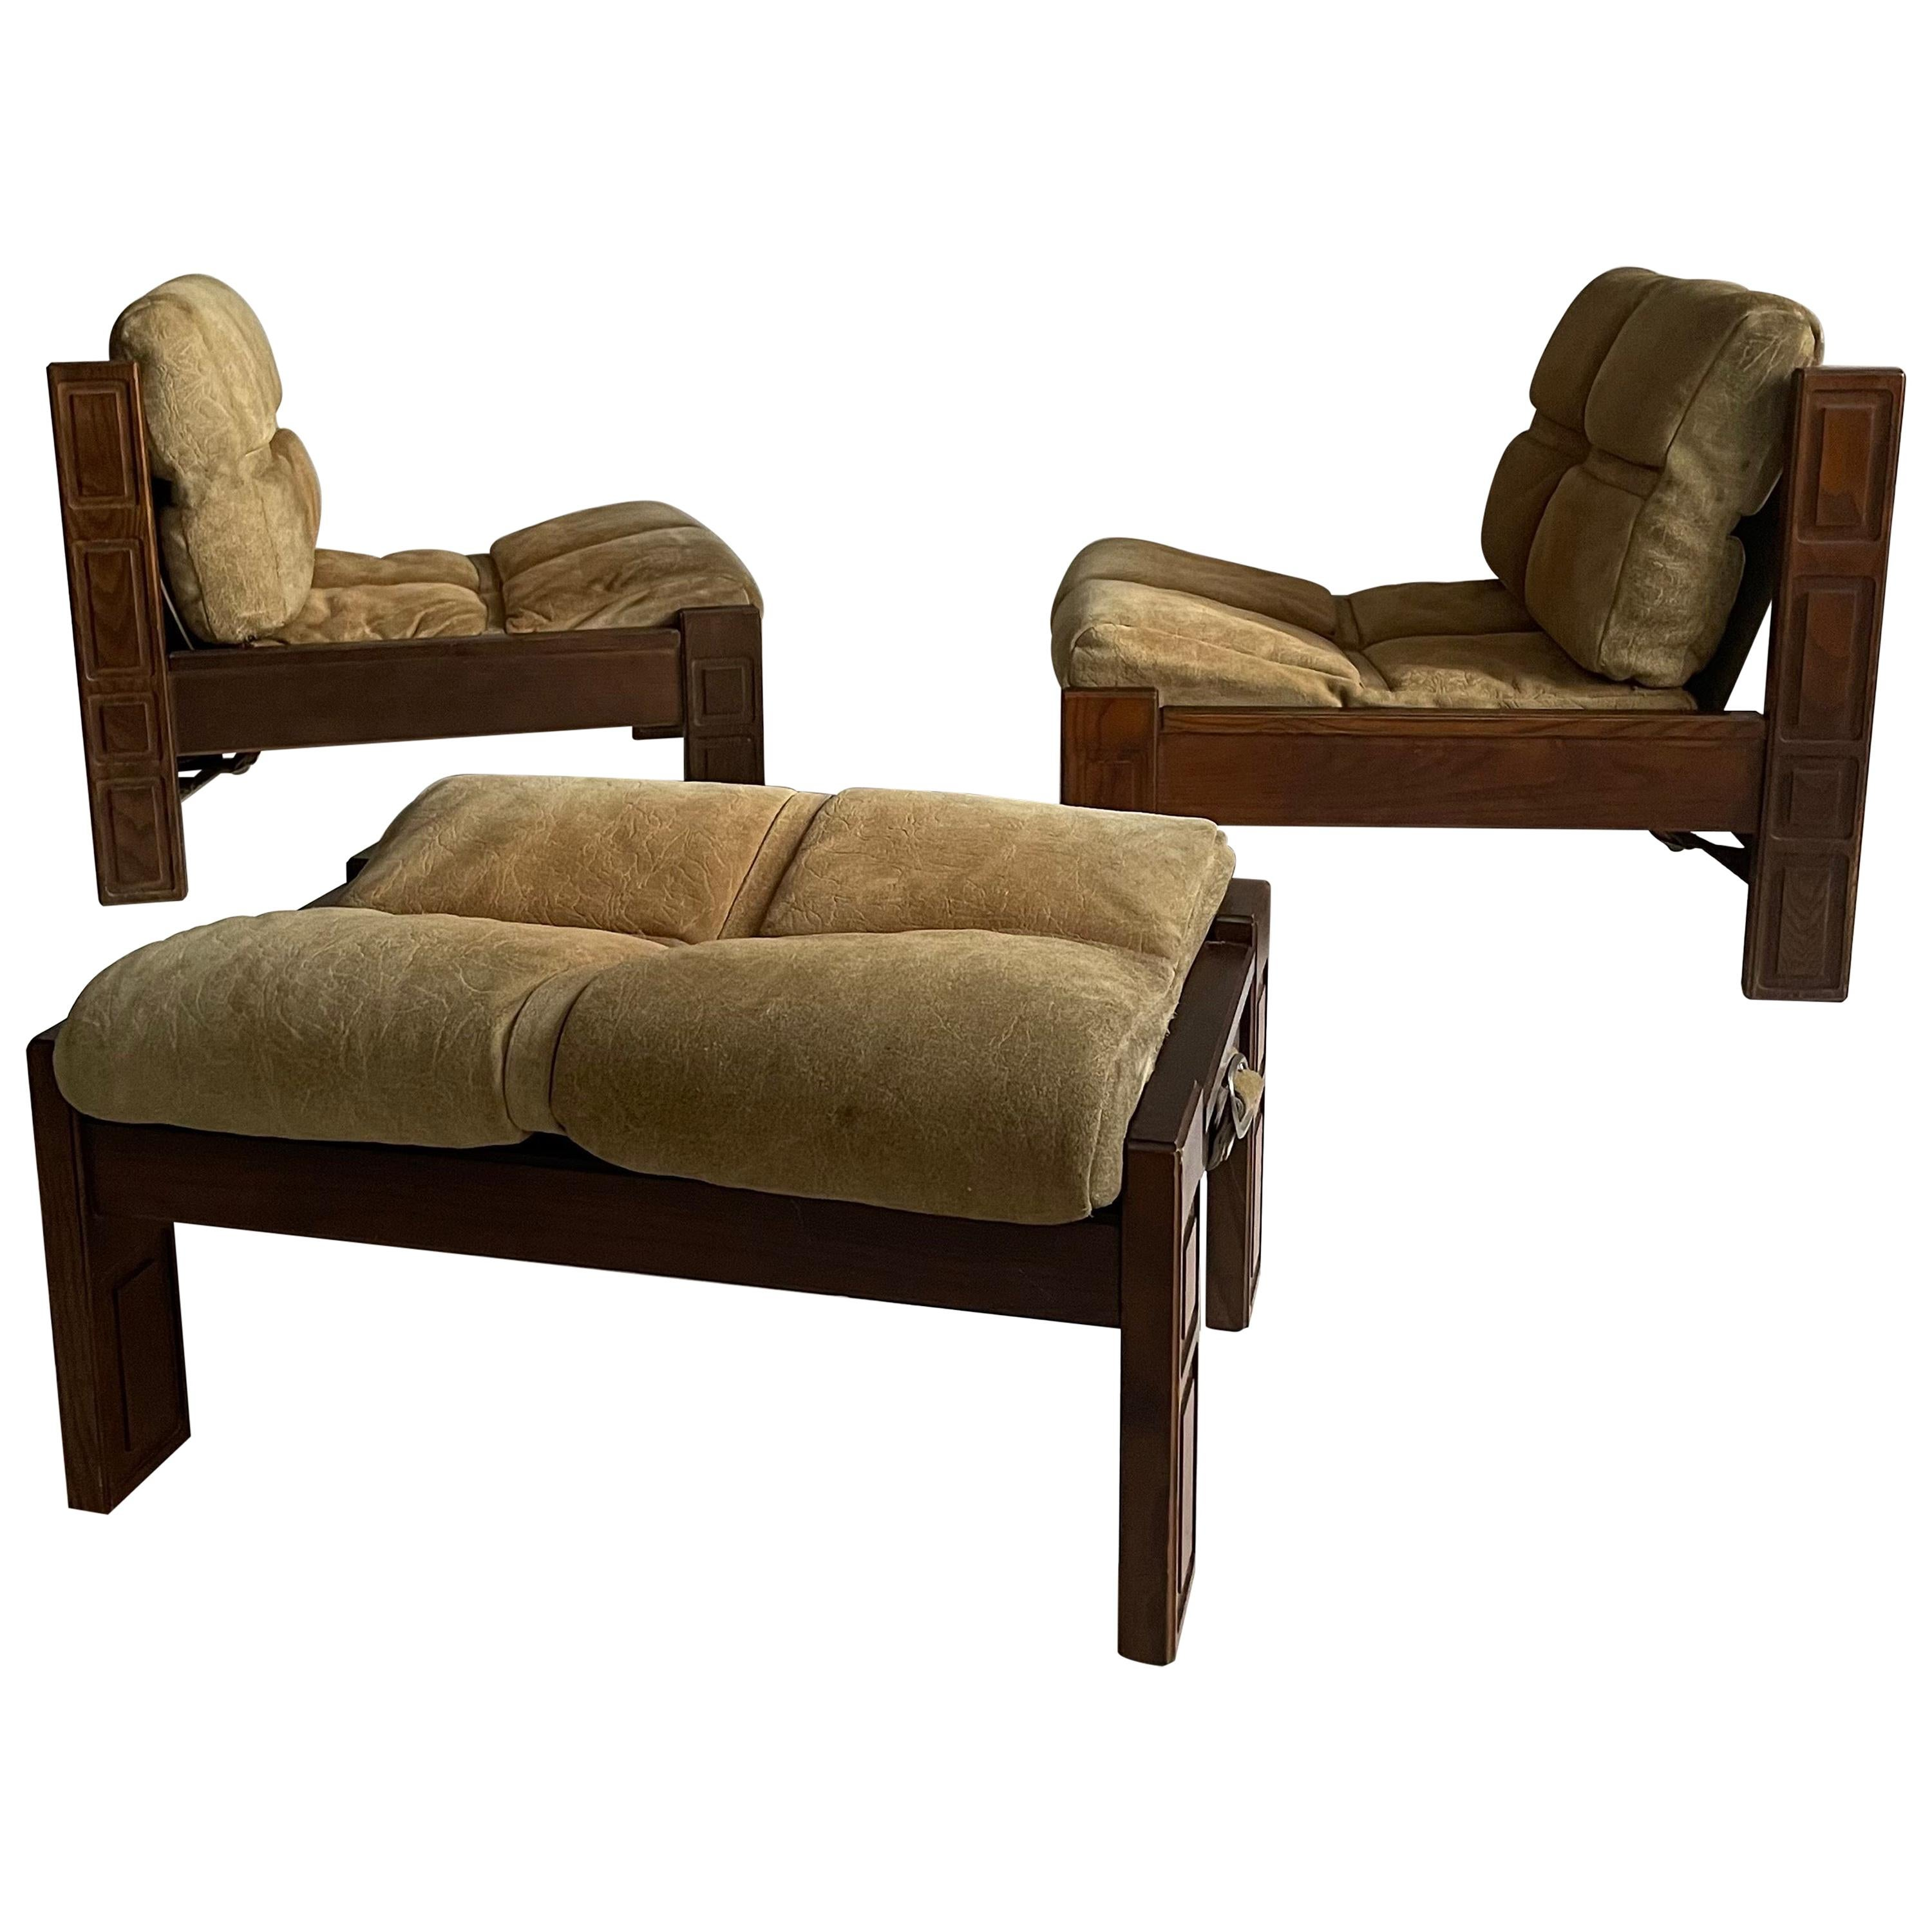 Luciano Frigerio Attributed Lounge Chairs Pair and Ottoman Suede Leather, Italy